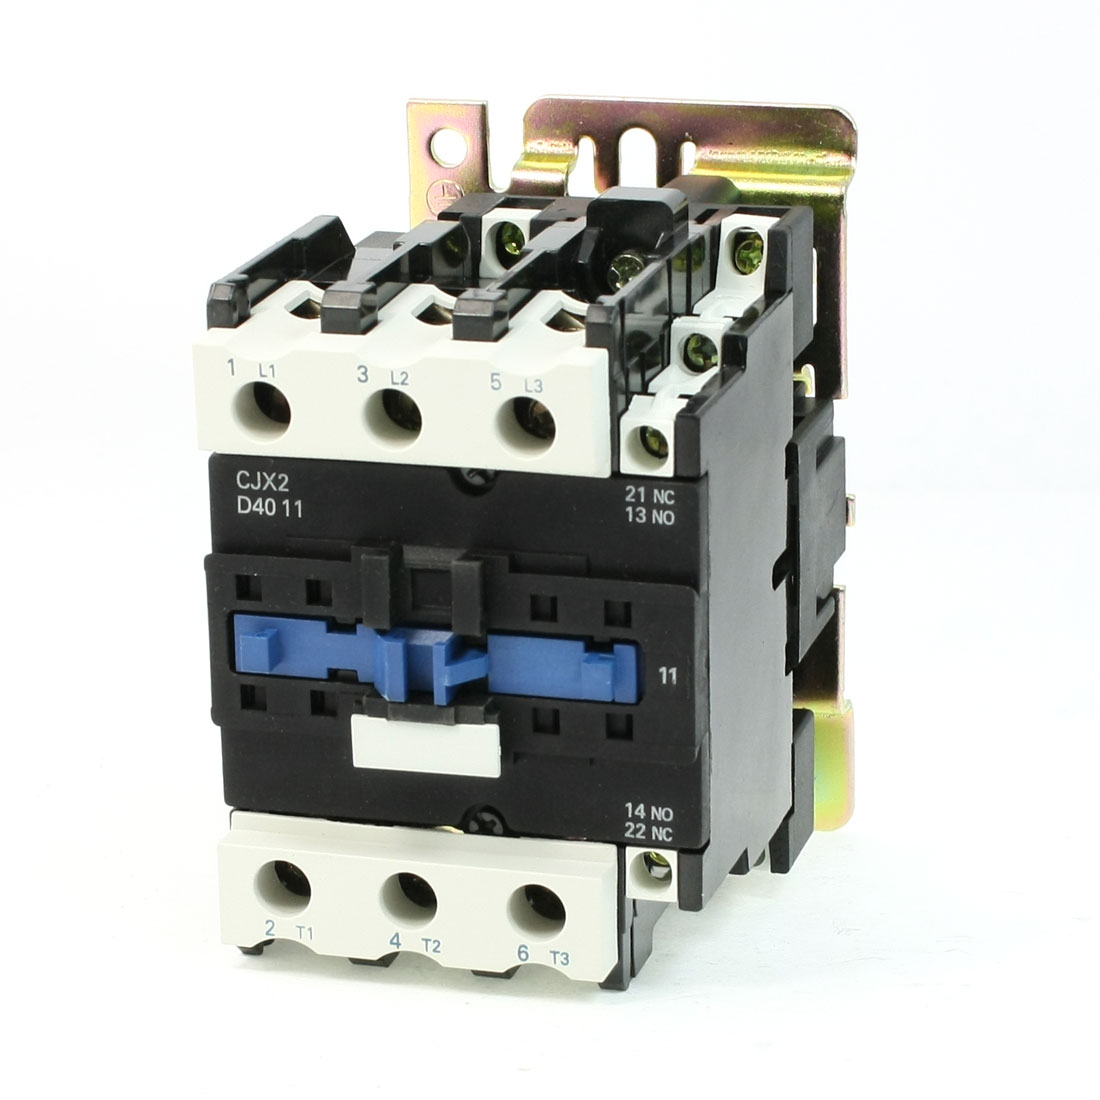 CJX2-4011 DIN Rail Mount AC Contactor 3 Pole One NO 24V Coil 60A